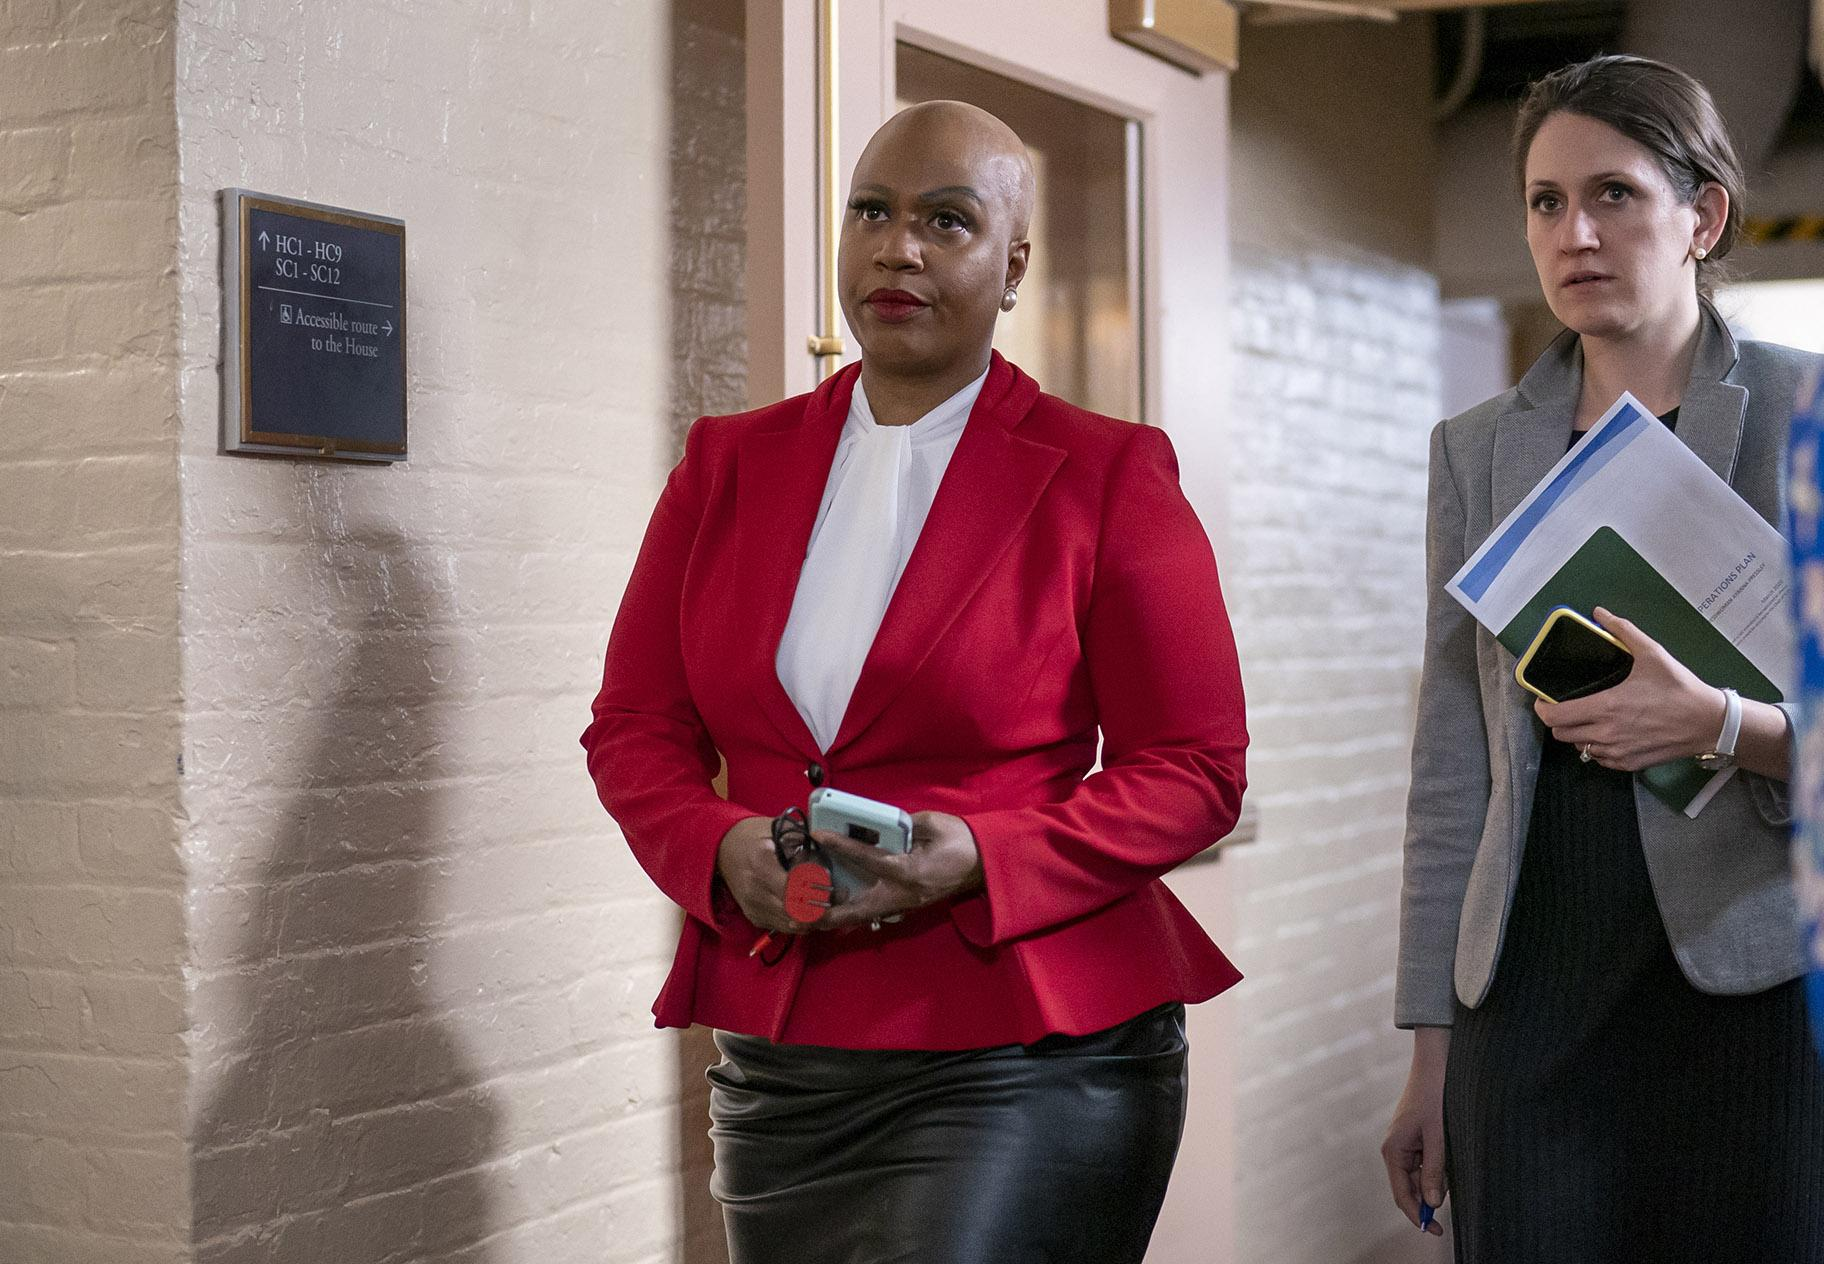 In this Wednesday, March 11, 2020, file photo, Rep. Ayanna Pressley, D-Mass., and other House Democrats arrive to meet with Speaker of the House Nancy Pelosi, D-Calif., on Capitol Hill in Washington. (AP Photo / J. Scott Applewhite, File)